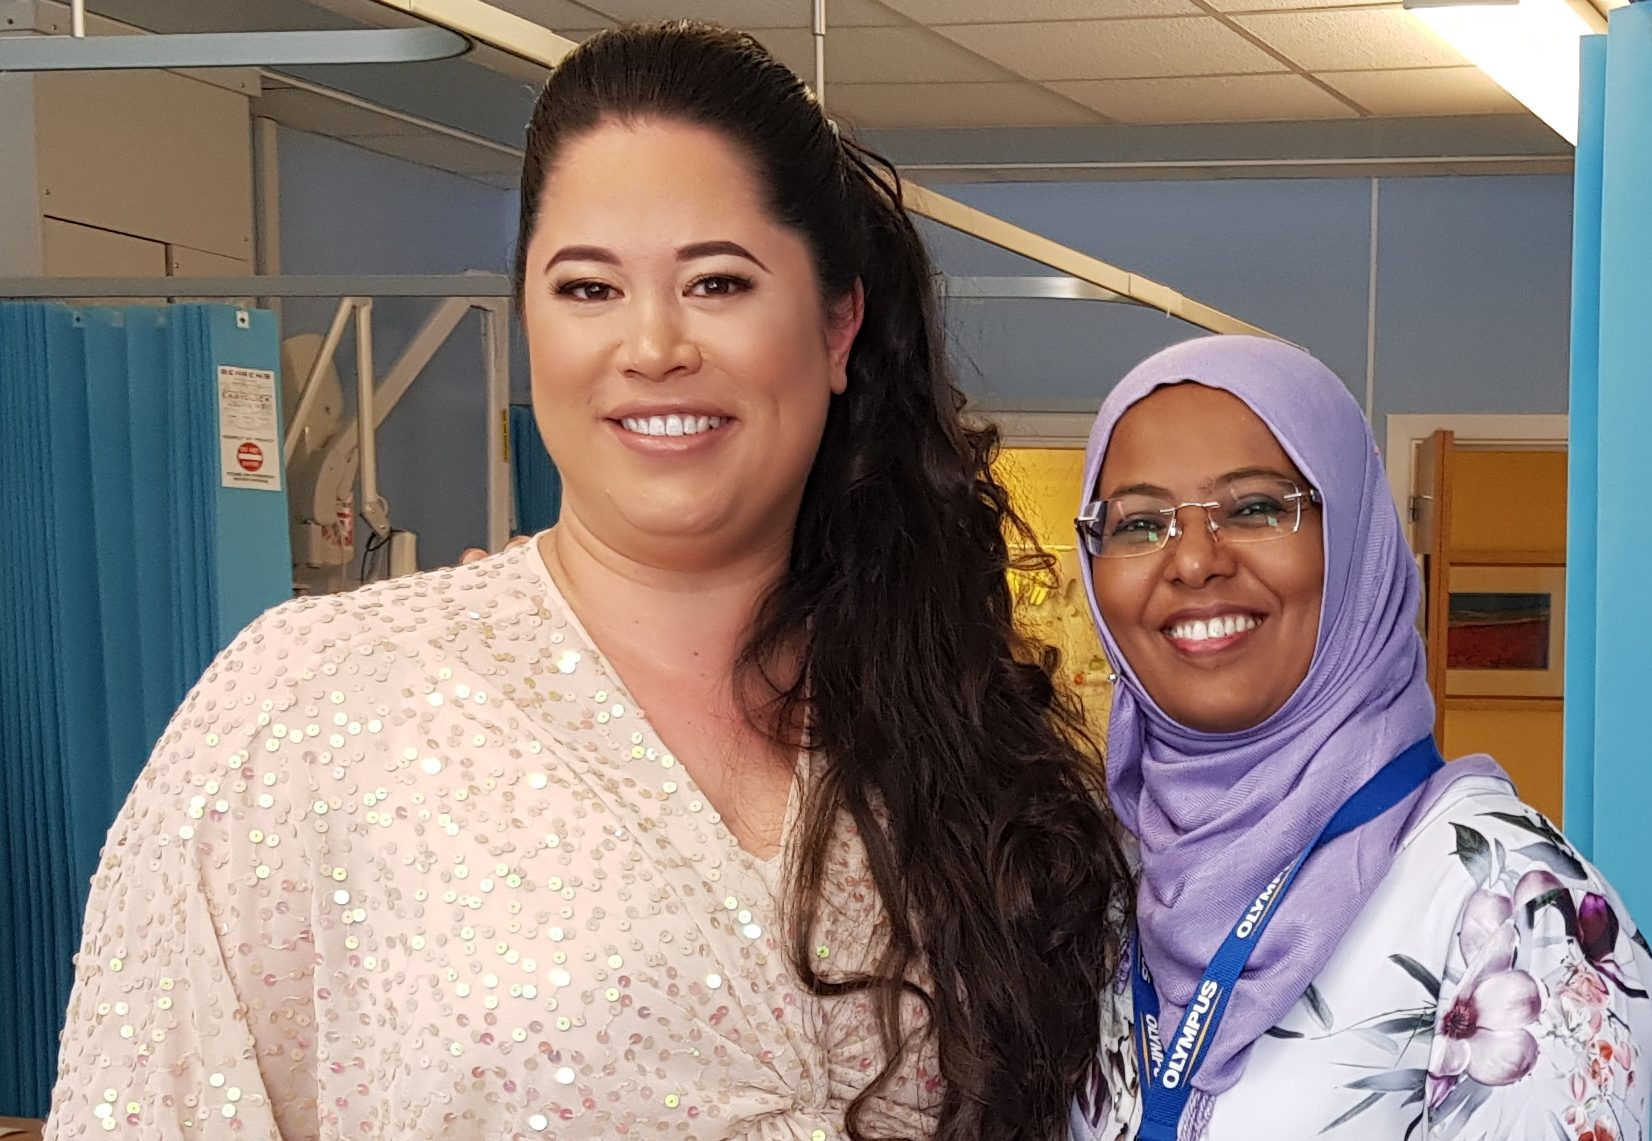 Erin Peak with Dr Salma Saad, consultant in obstetrics and gynaecology, ready for her big day.